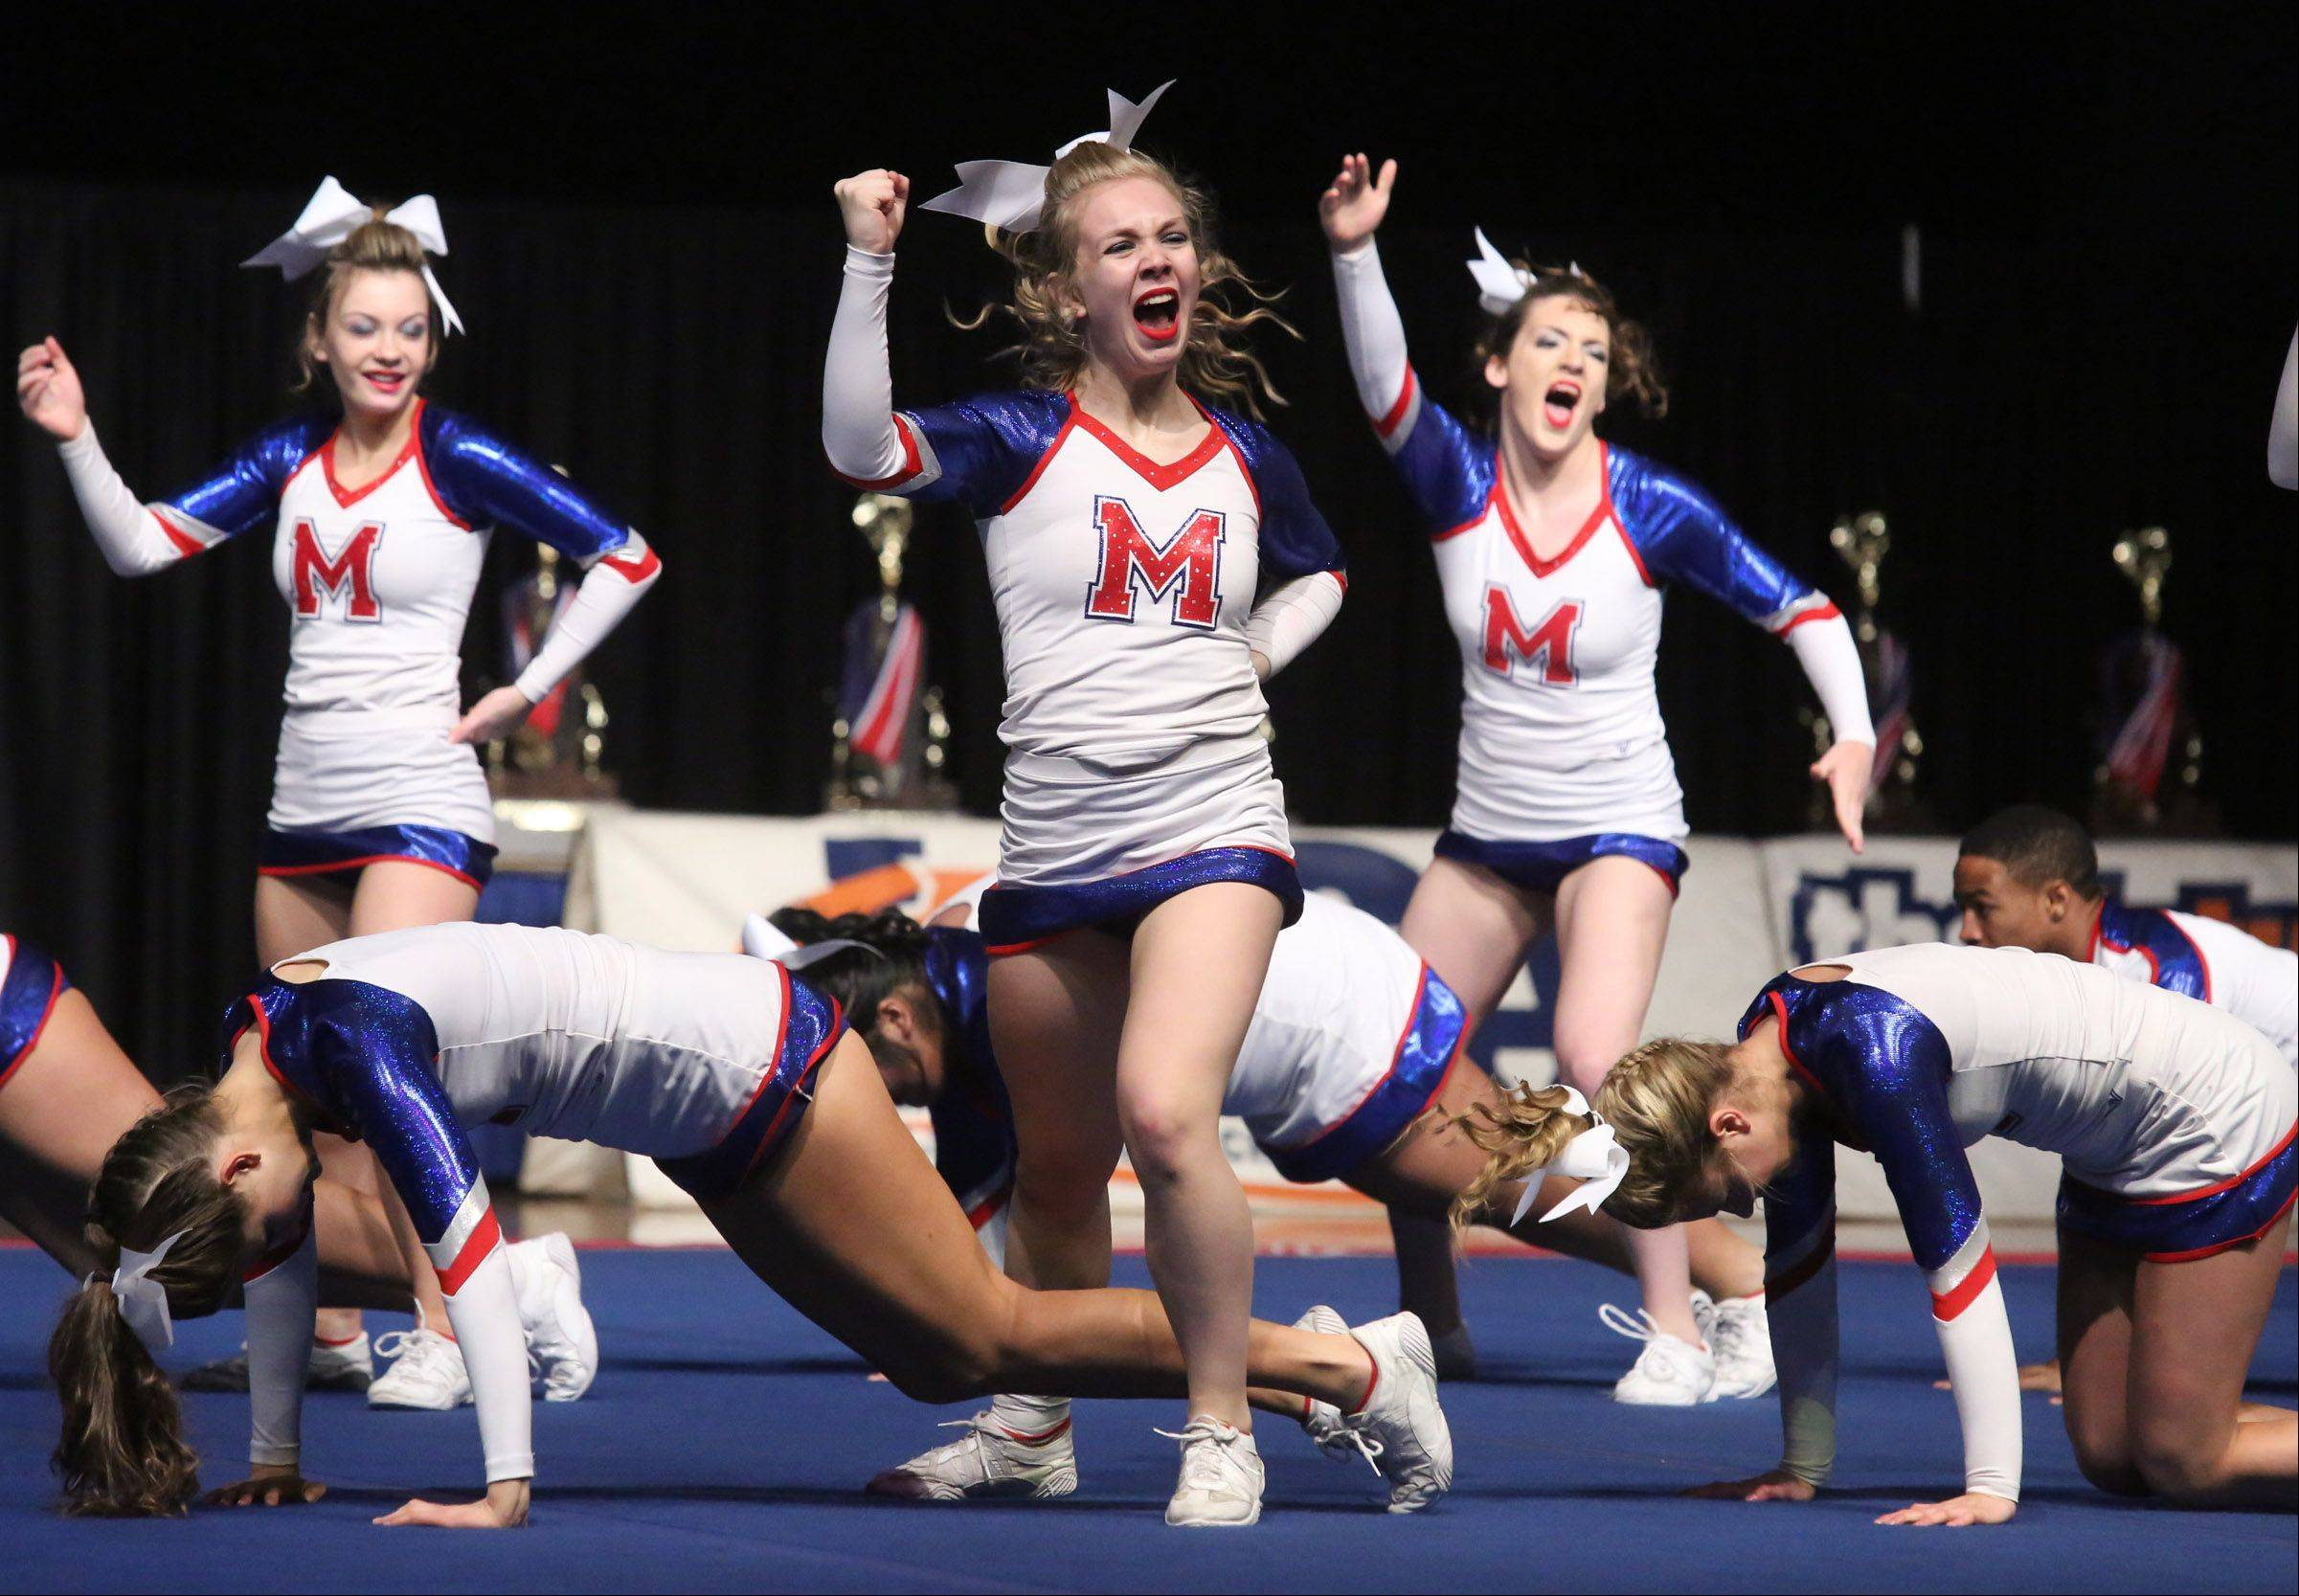 Rosary High School's cheer team performs in the medium team category.